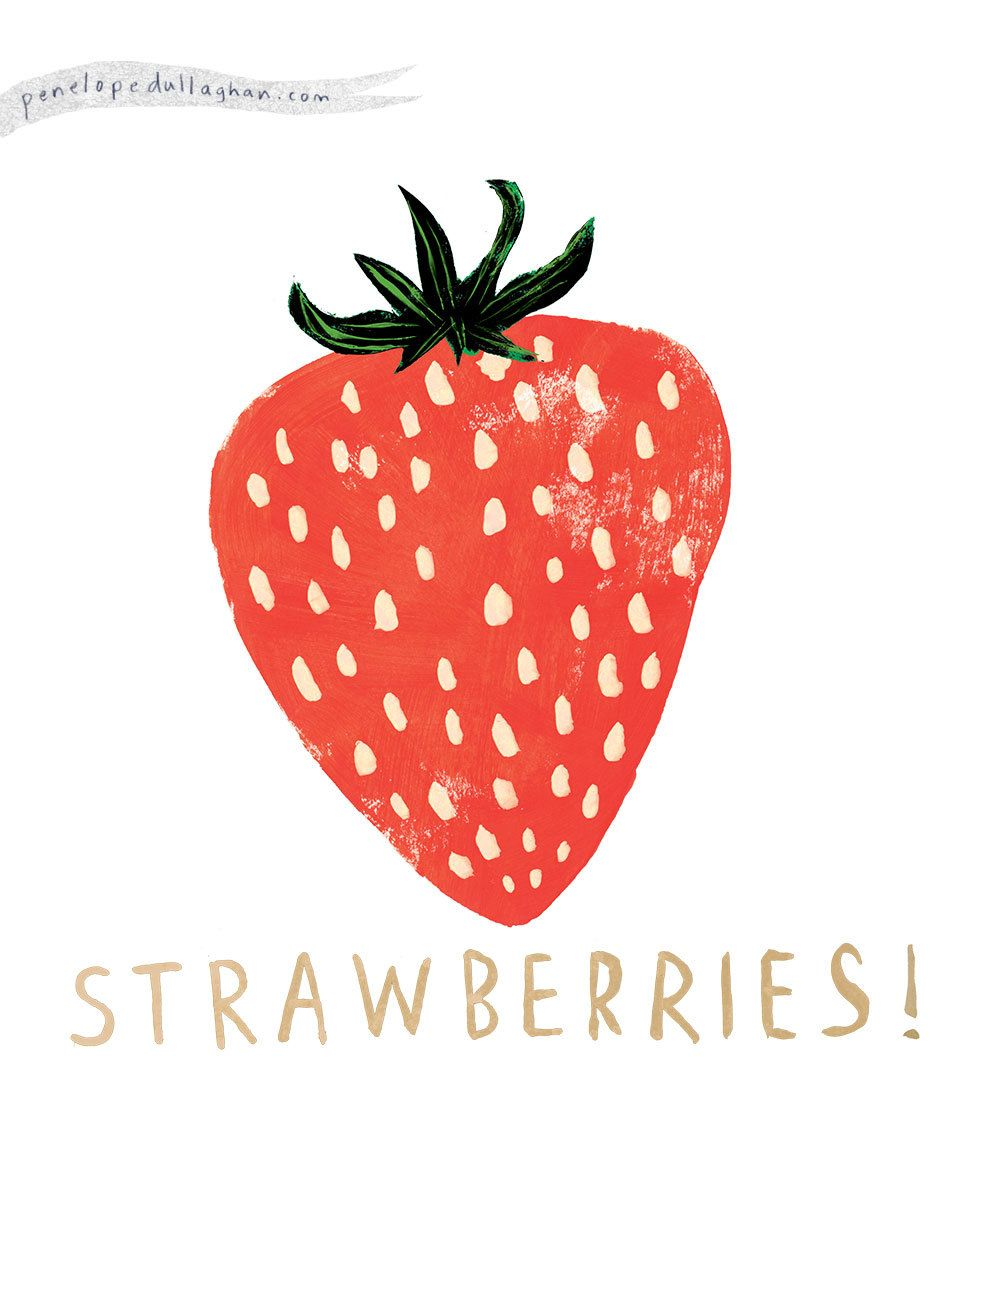 strawberries strawberry drawing illustration food illustration design strawberries strawberry drawing